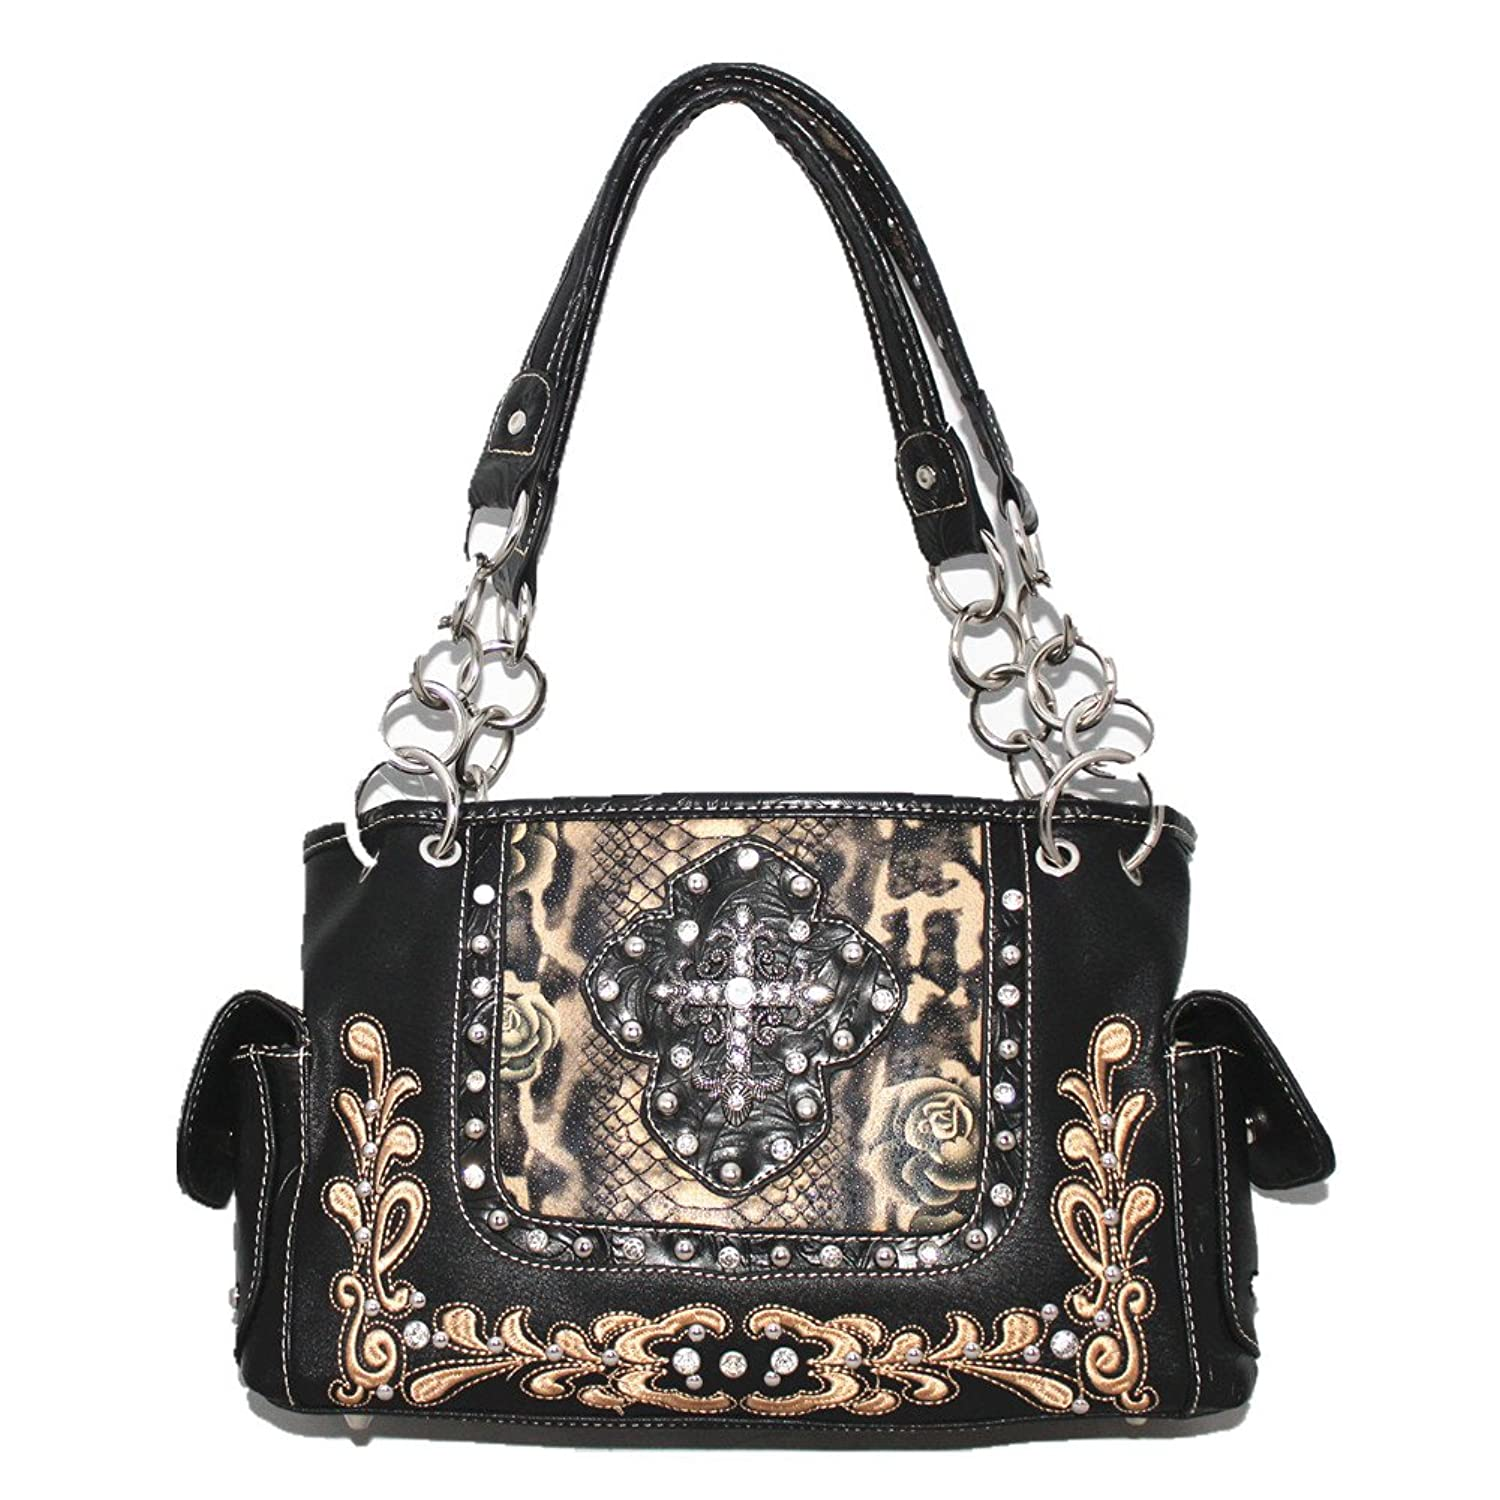 Rhinestone Cross Flower Leather Shoulder Handbag Purse in Red Pink and Black 0602